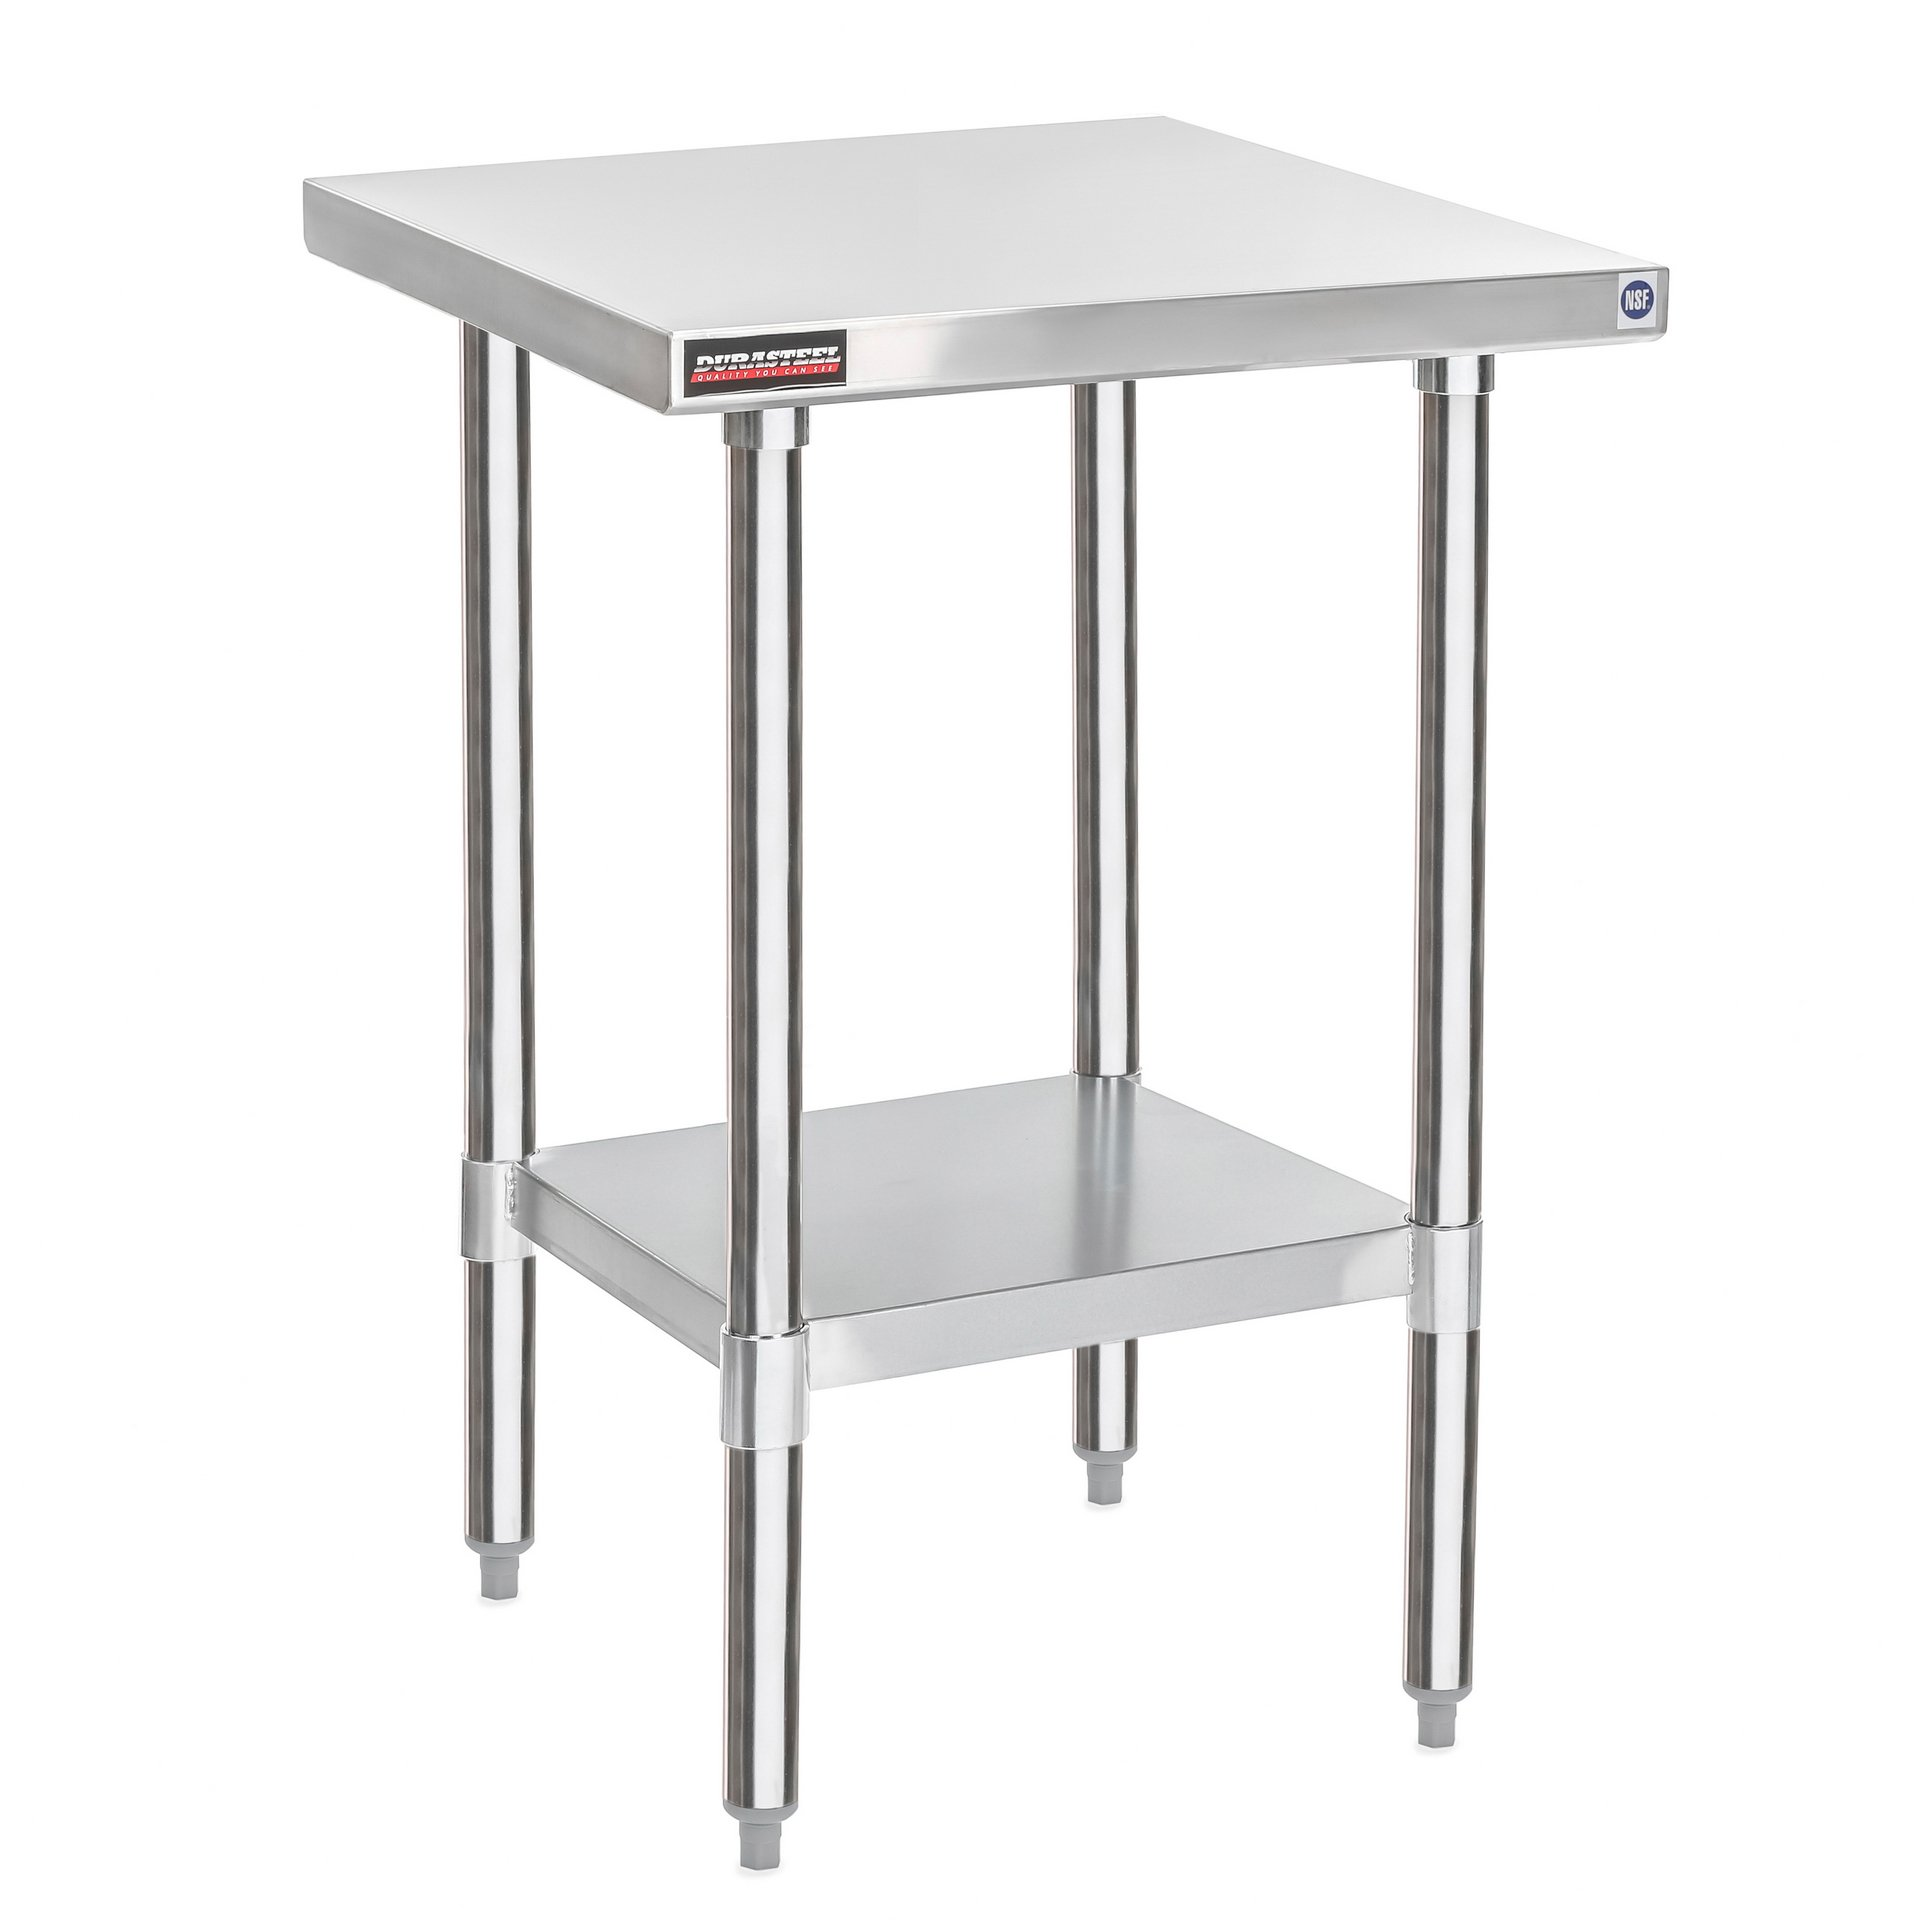 """DuraSteel Stainless Steel Worktable Food Prep 24''X24''X34""""Height - Commercial Grade Worktable - Fits for use in Restaurant, Business, Warehouse, Home, Kitchen, Garage"""